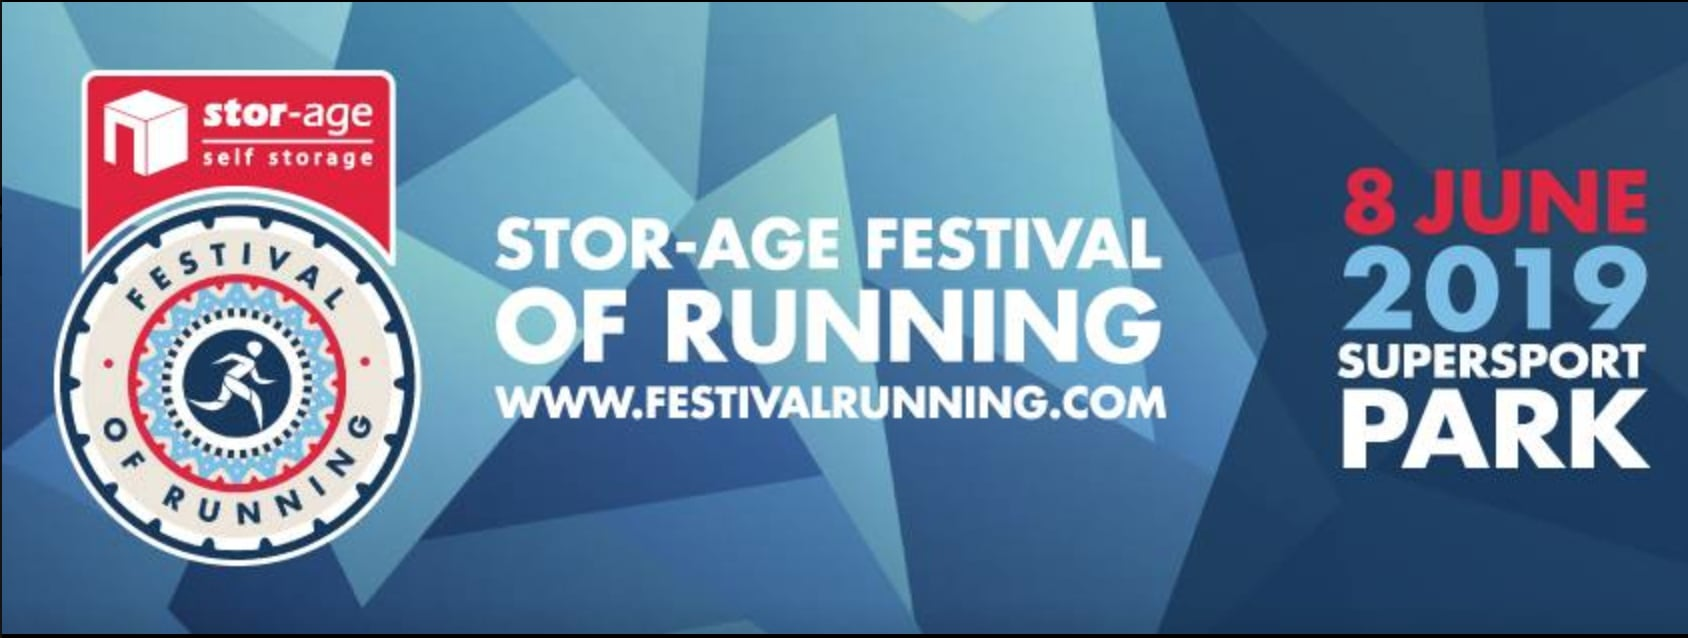 Stor-Age Festival of Running 2019 draws closer